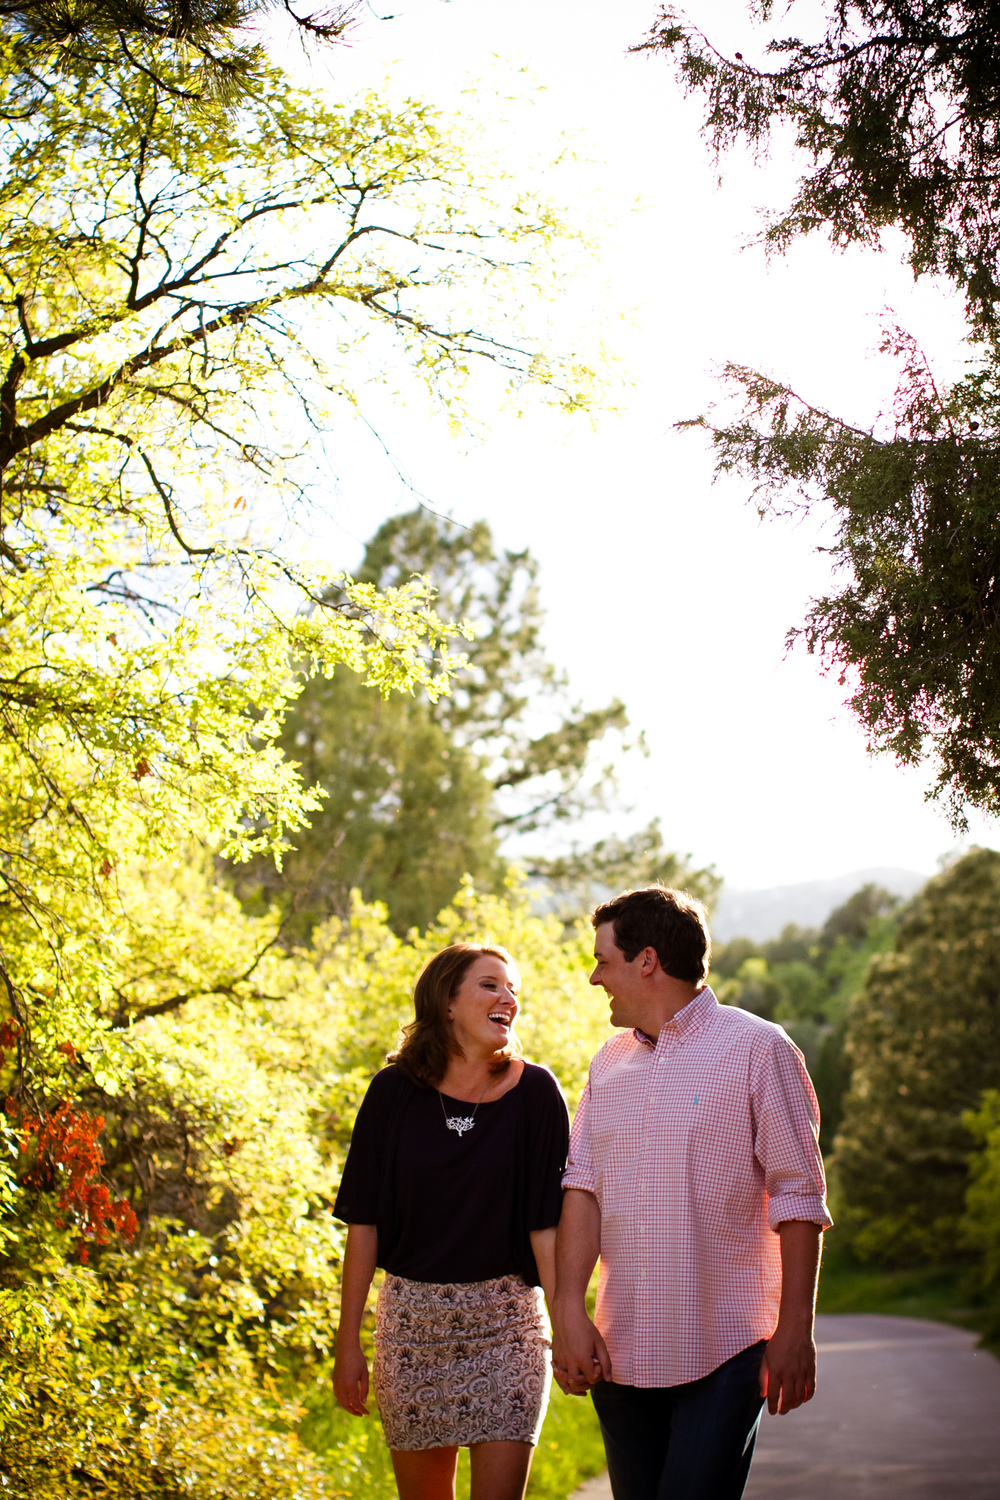 Castle_Pines_Colorado'_Engagement_Photos_015.JPG